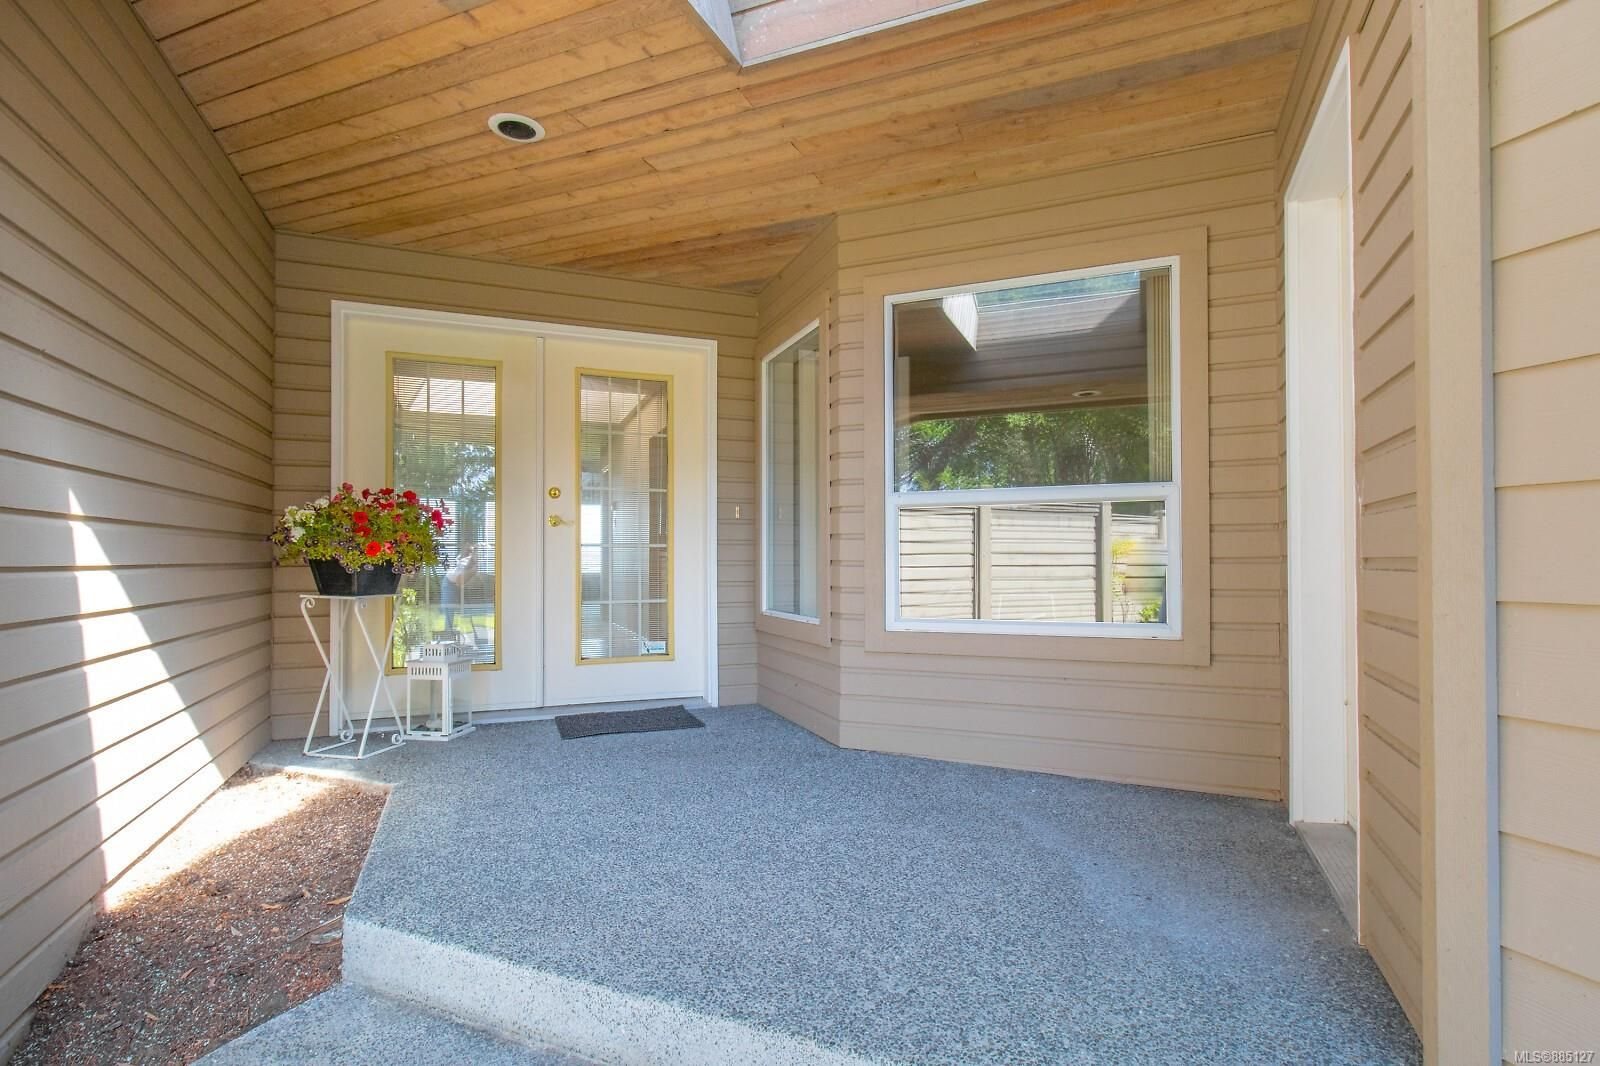 Photo 18: Photos: 26 529 Johnstone Rd in : PQ French Creek Row/Townhouse for sale (Parksville/Qualicum)  : MLS®# 885127